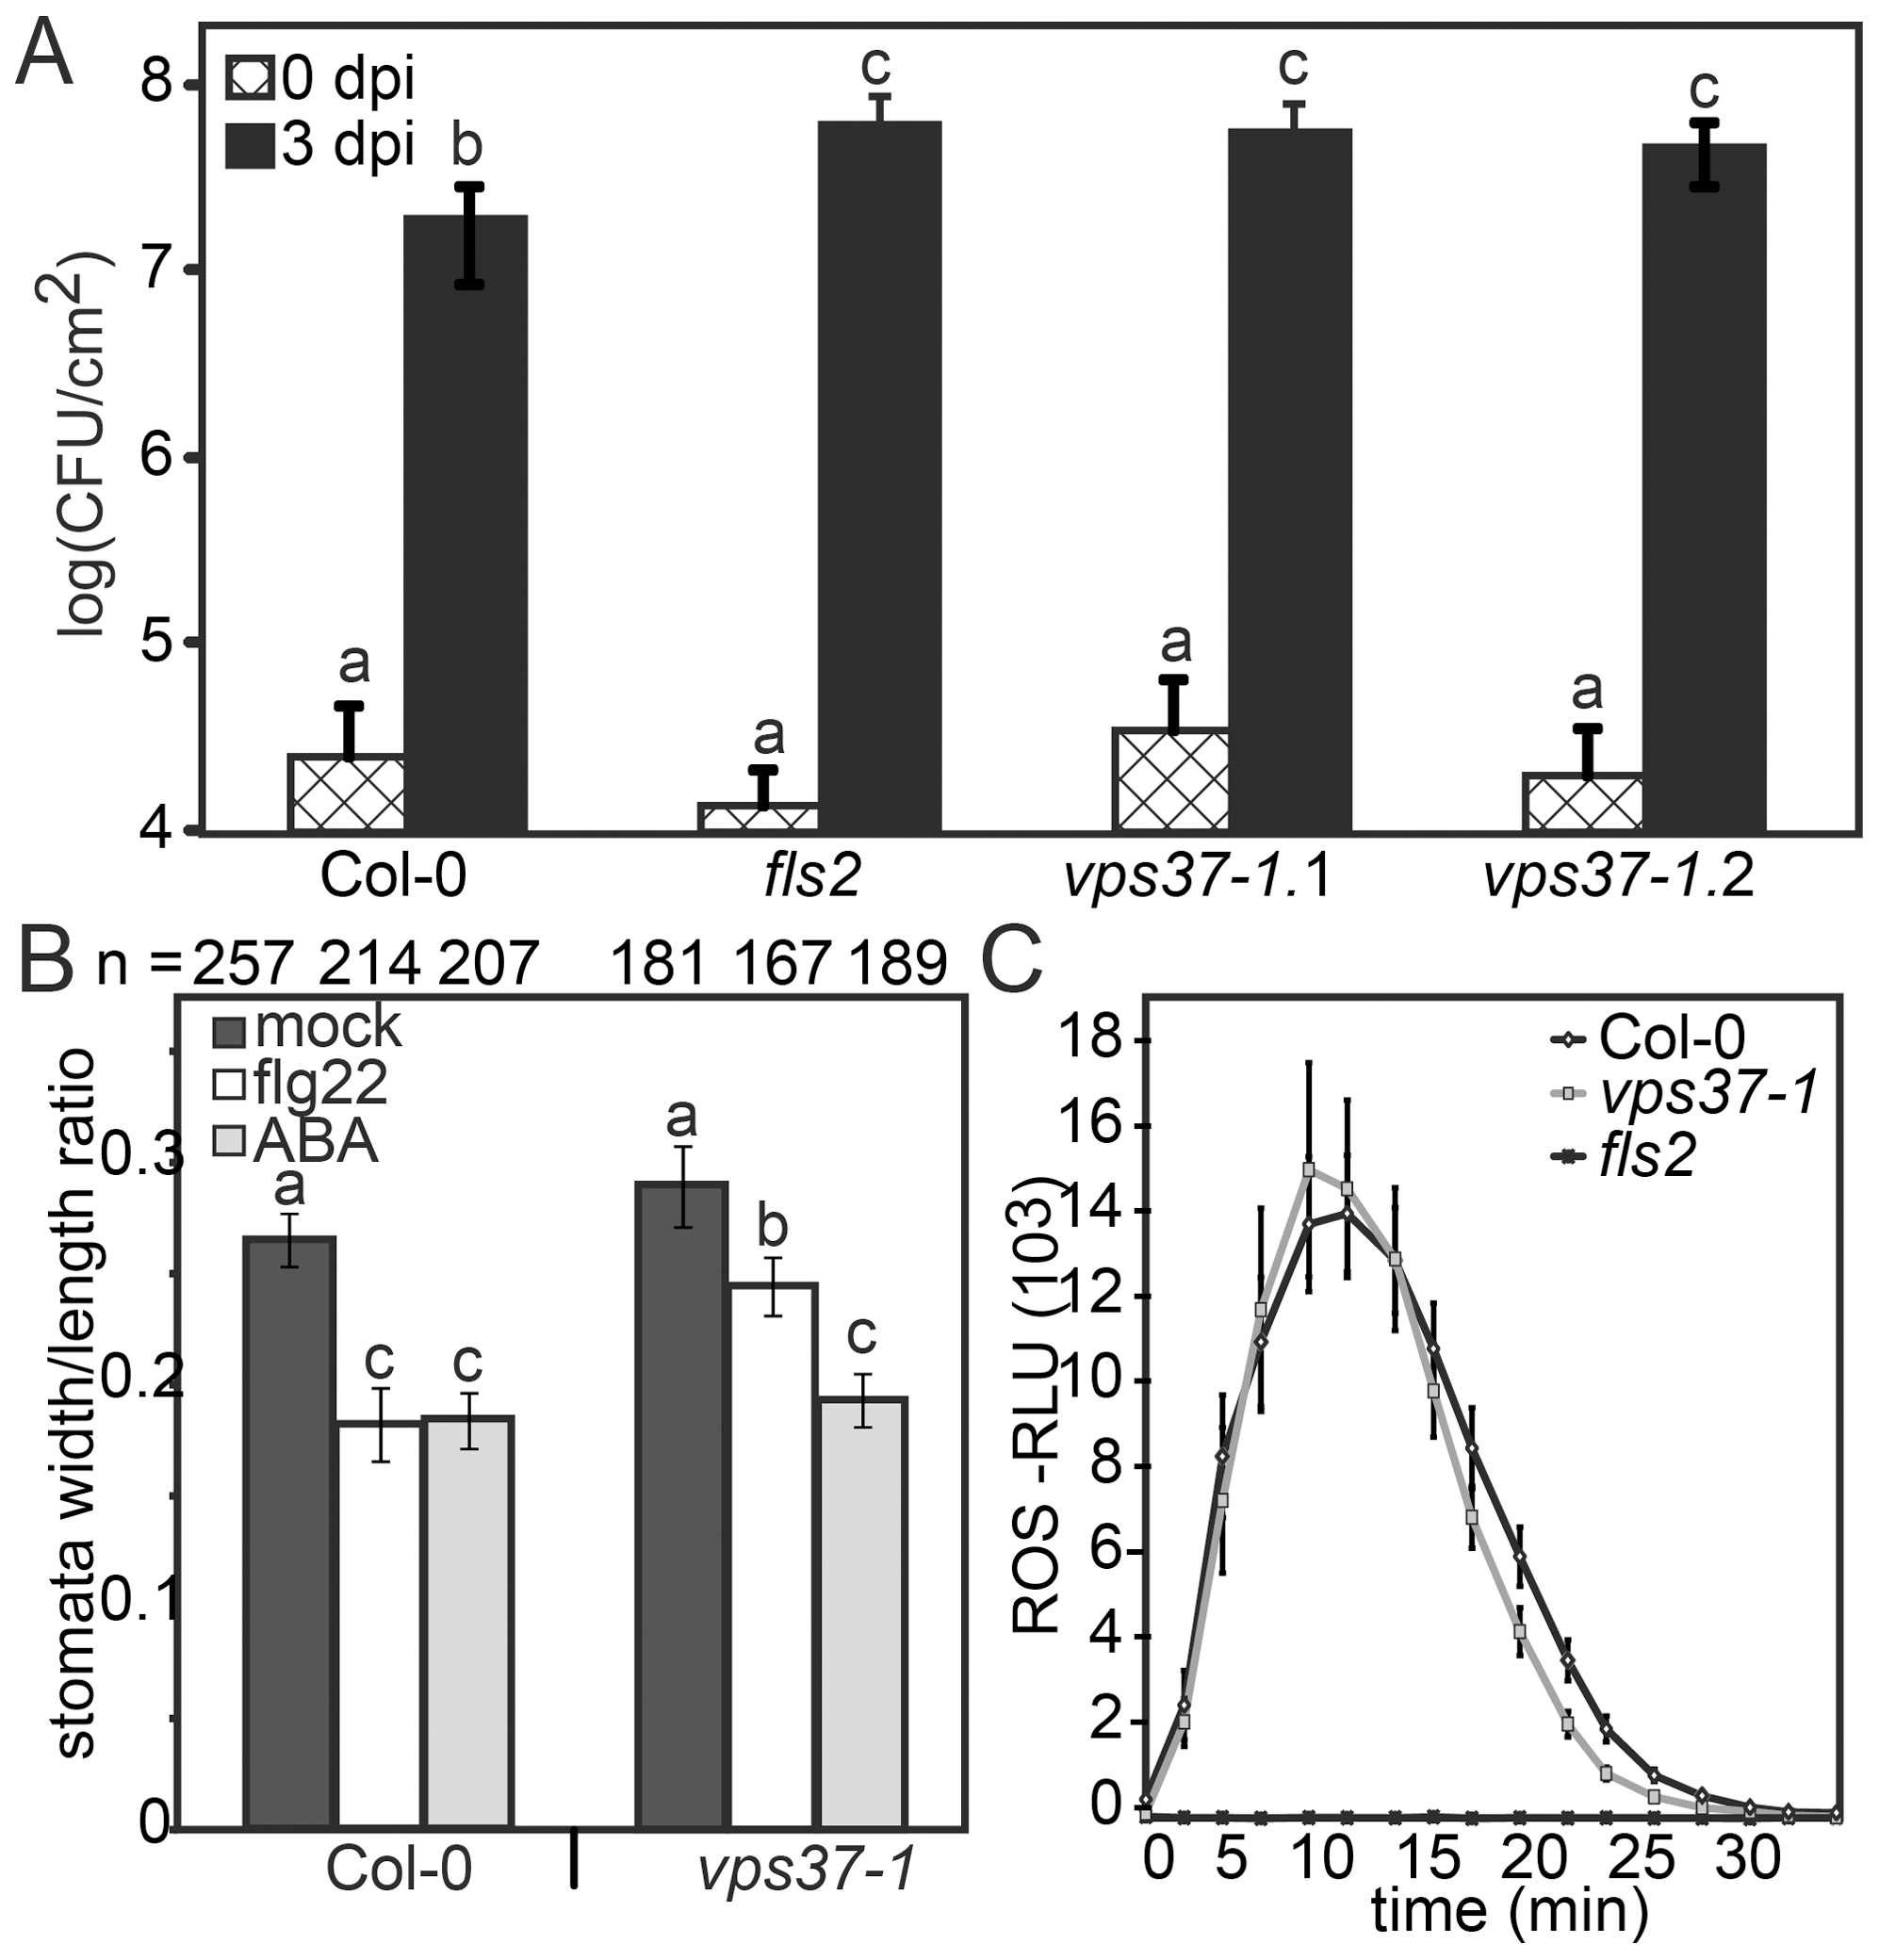 Knock-out <i>vps37-1</i> mutants are impaired in immunity.